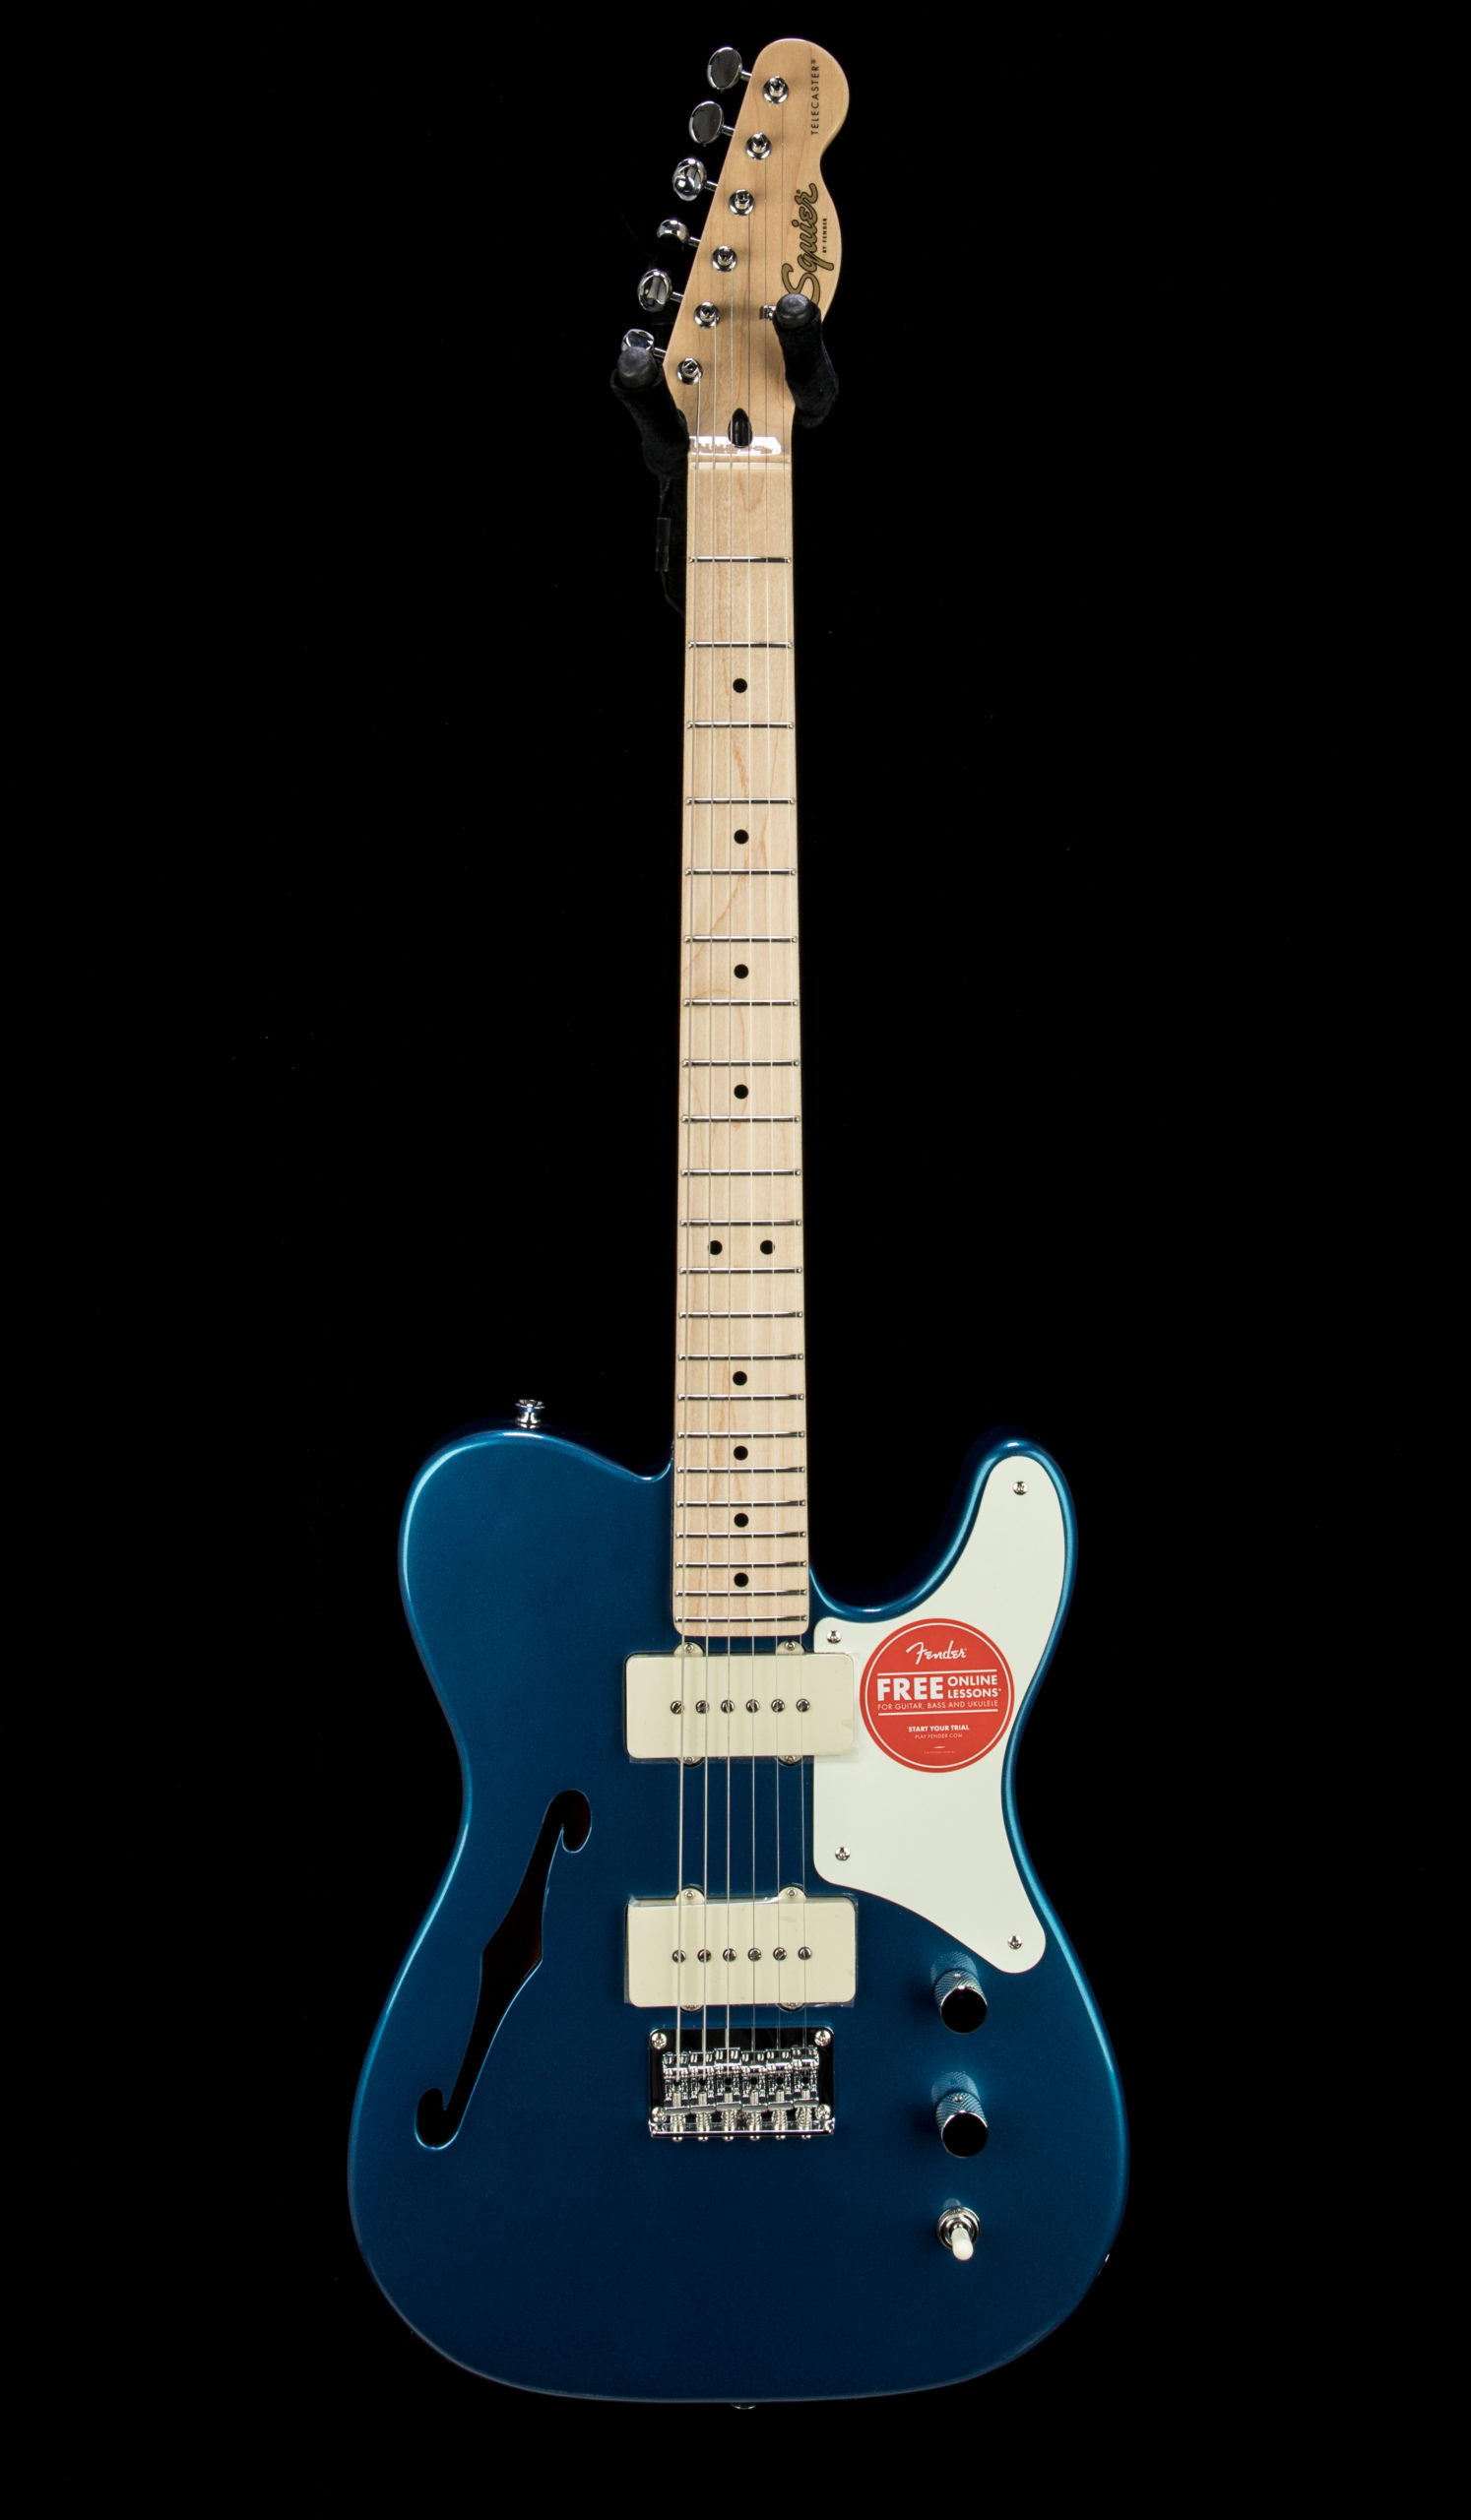 Squier Paranormal Cab Tele Thinline #CYKC21002427 Front